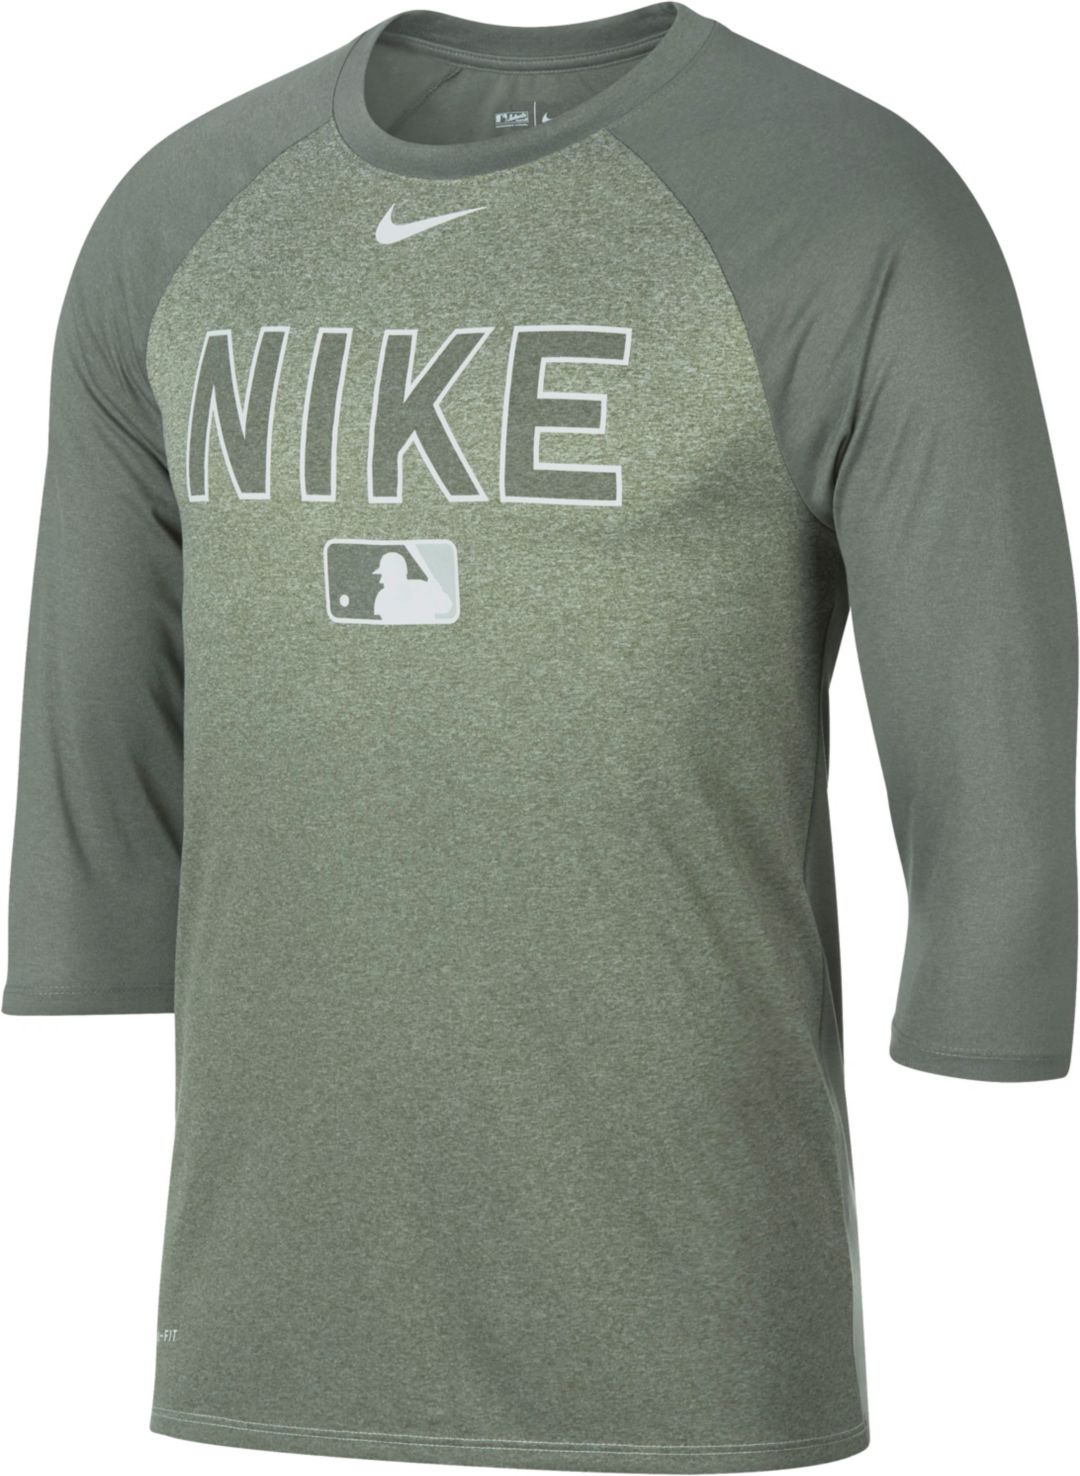 acec351e43c Nike Men's Legend Raglan ¾-Sleeve Baseball Shirt | DICK'S Sporting Goods